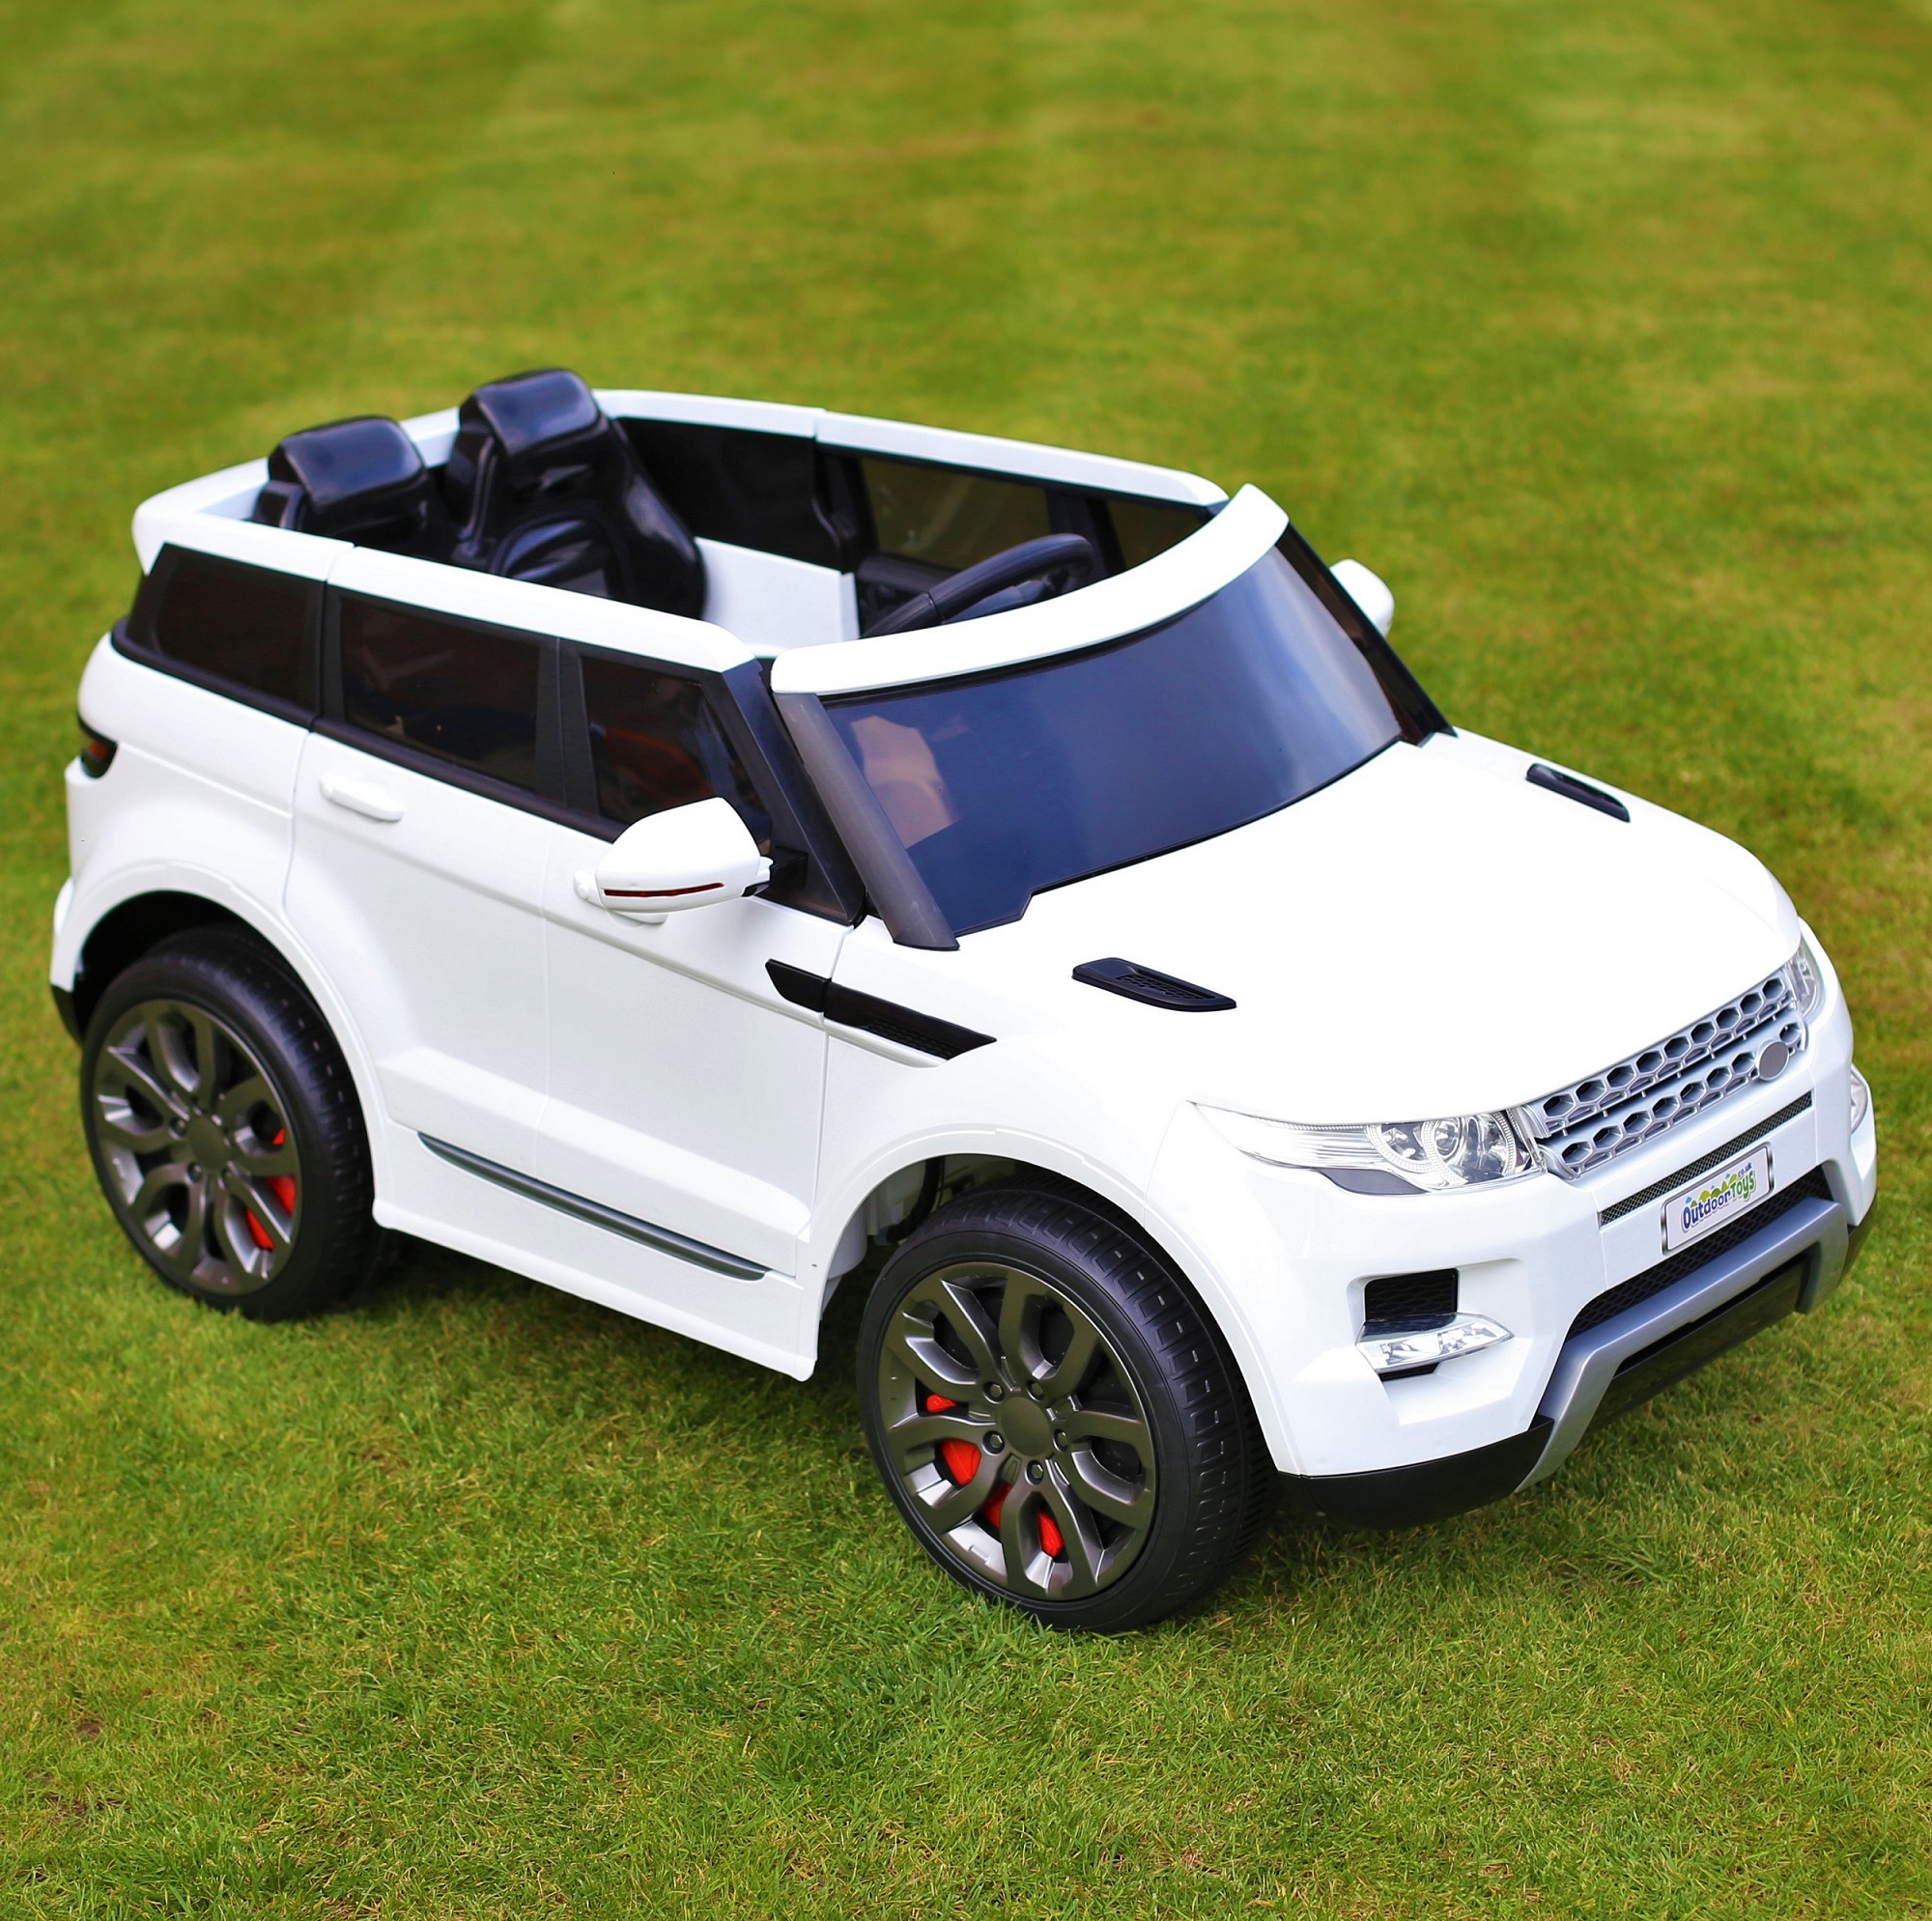 sentinel maxi range rover hse sport style 12v electric battery ride on car jeep white